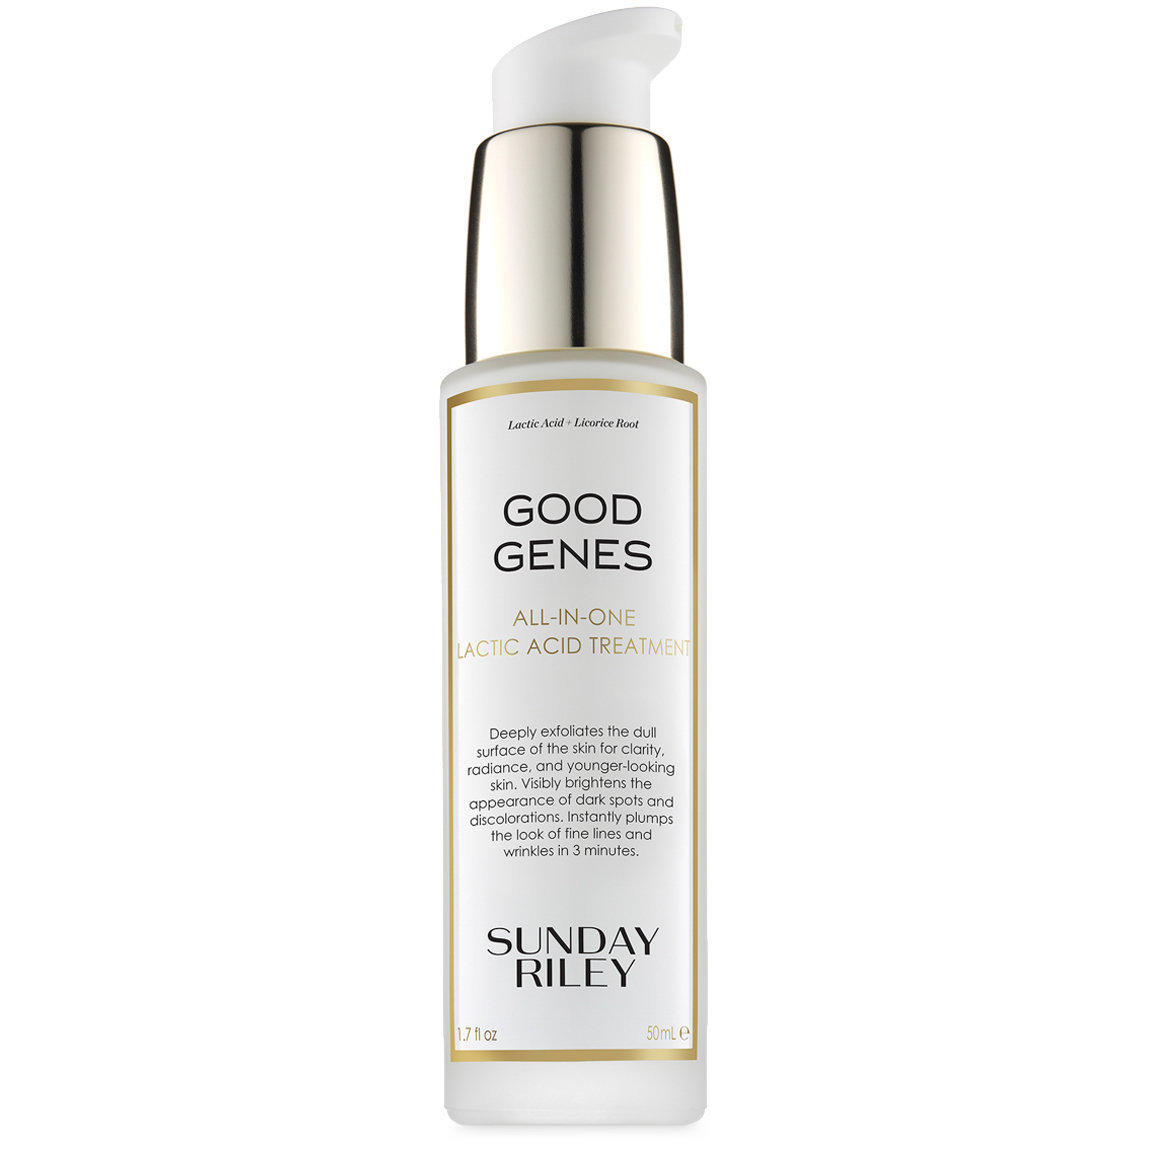 Sunday Riley Good Genes All-In-One Lactic Acid Treatment 50 ml alternative view 1 - product swatch.